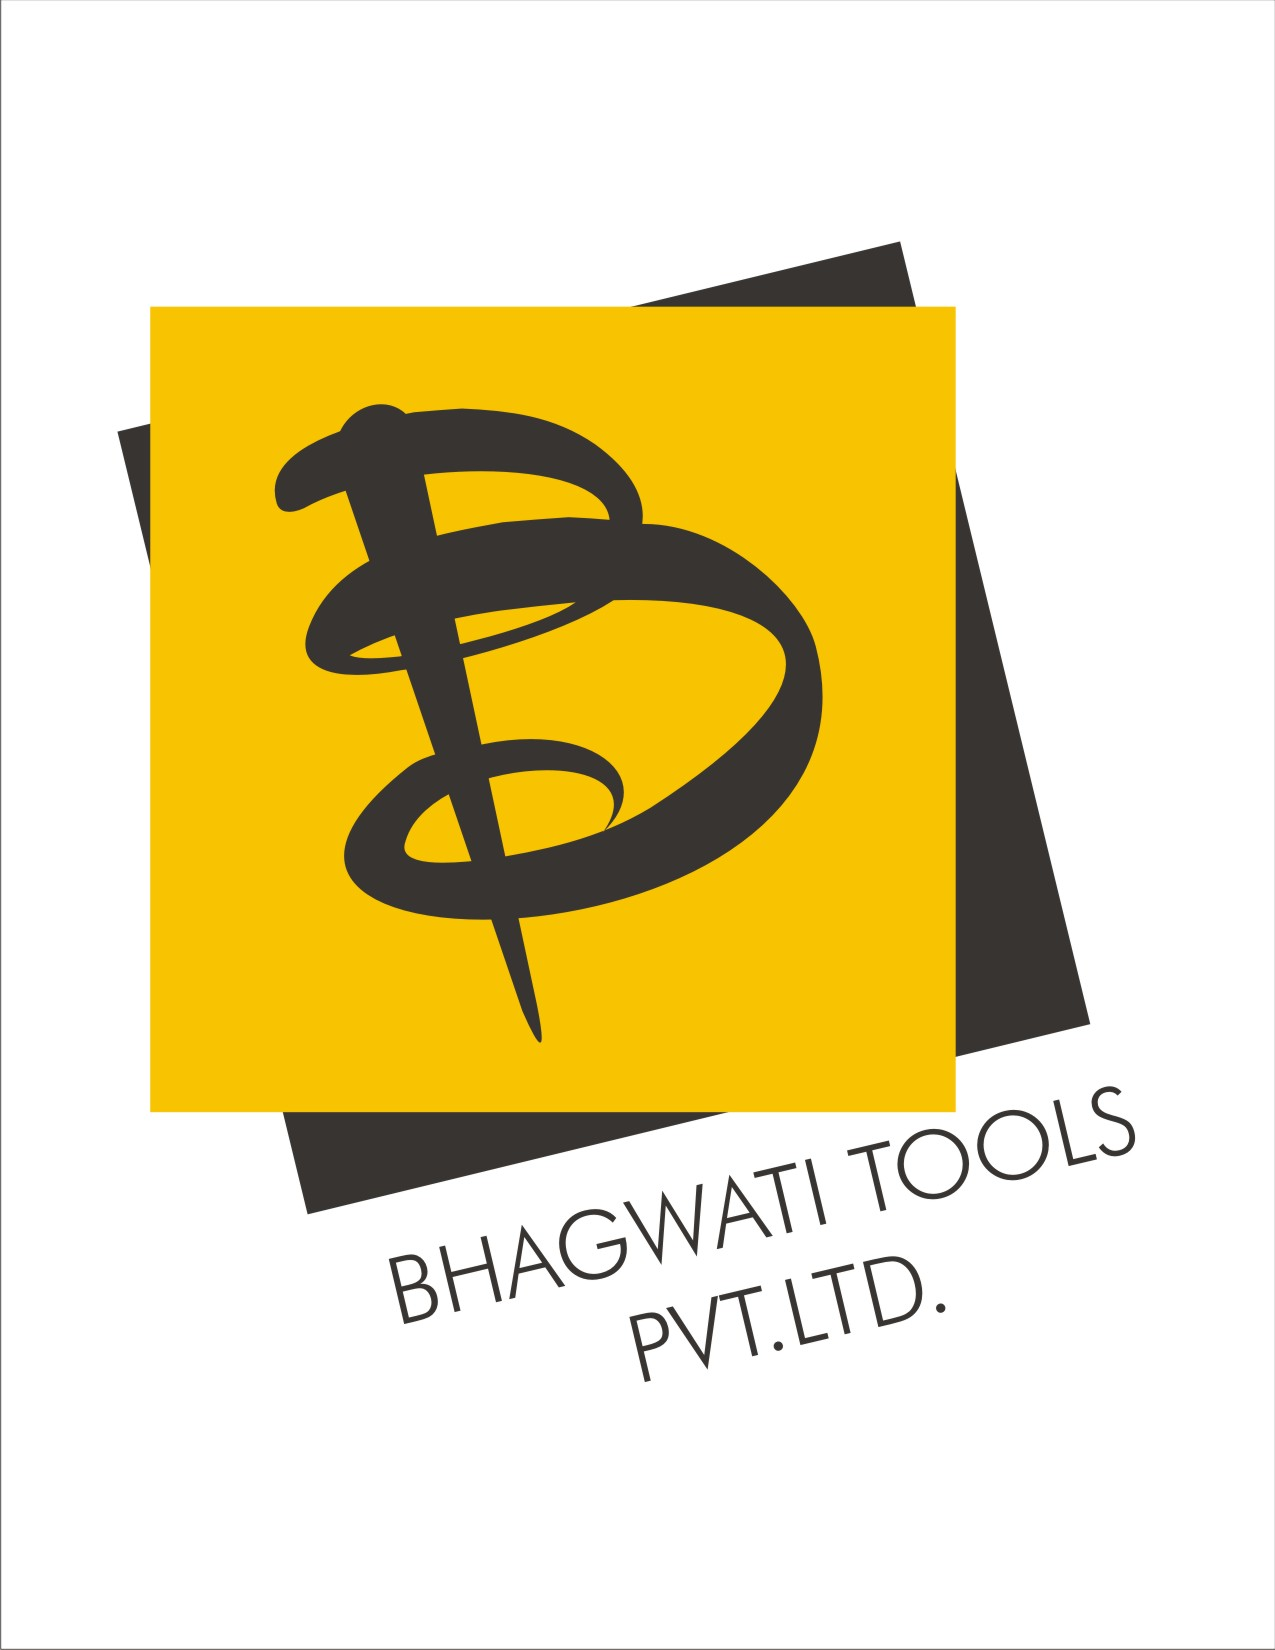 Bhagwati Tools Pvt Ltd